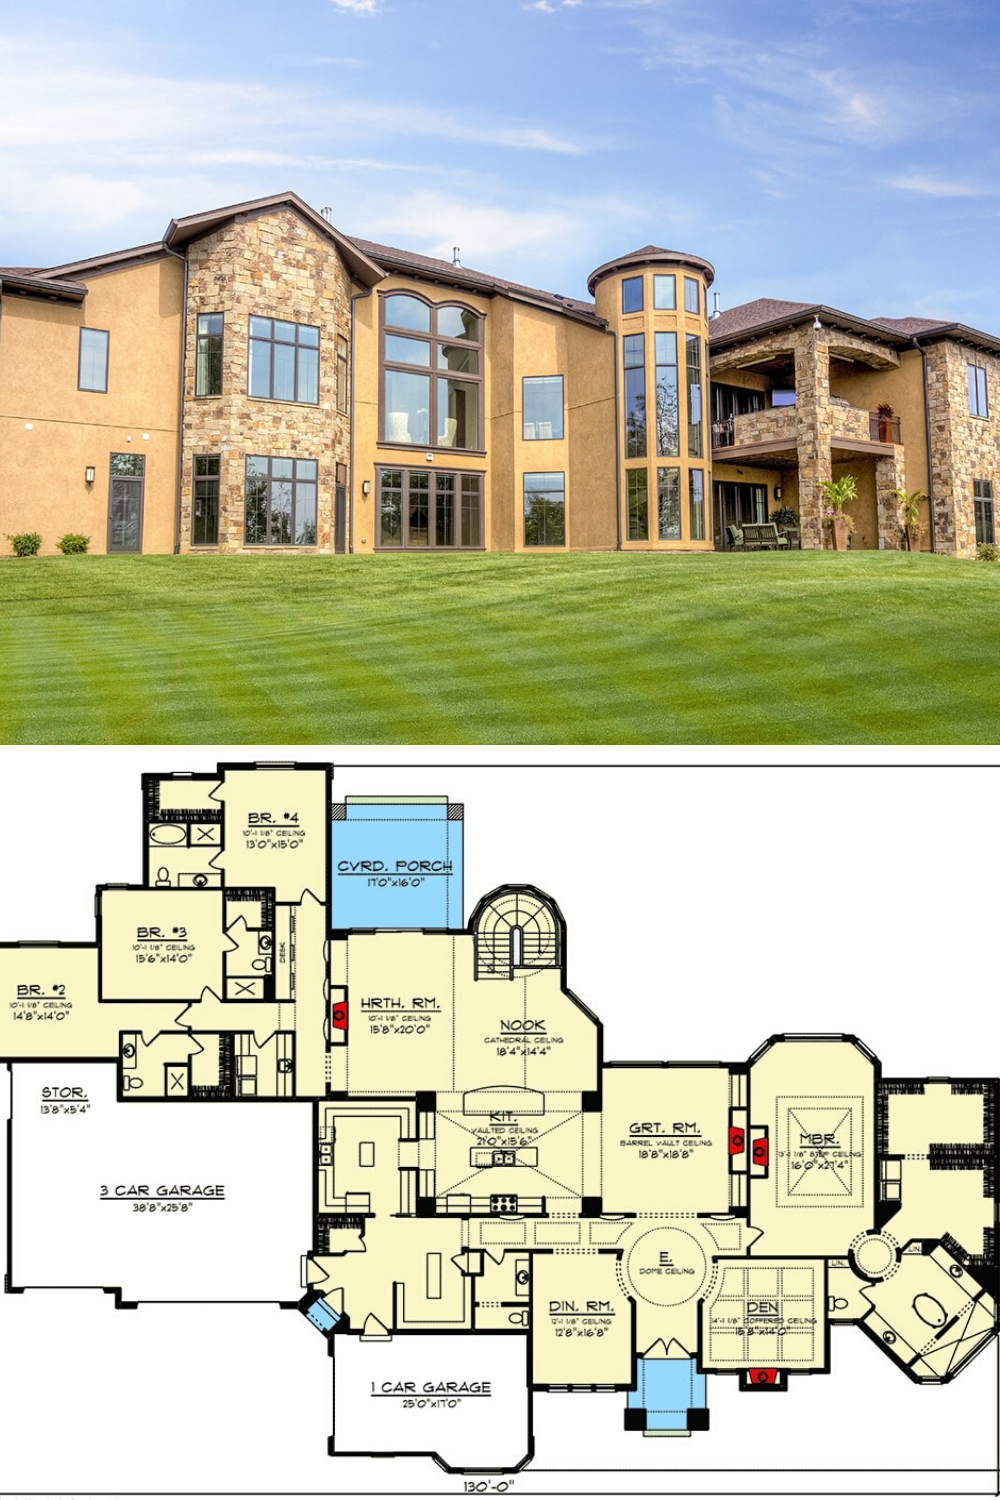 Single Story 5 Bedroom Tuscan Home With Finished Walkout Basement Floor Plan Basement House Plans One Level House Plans Tuscan House